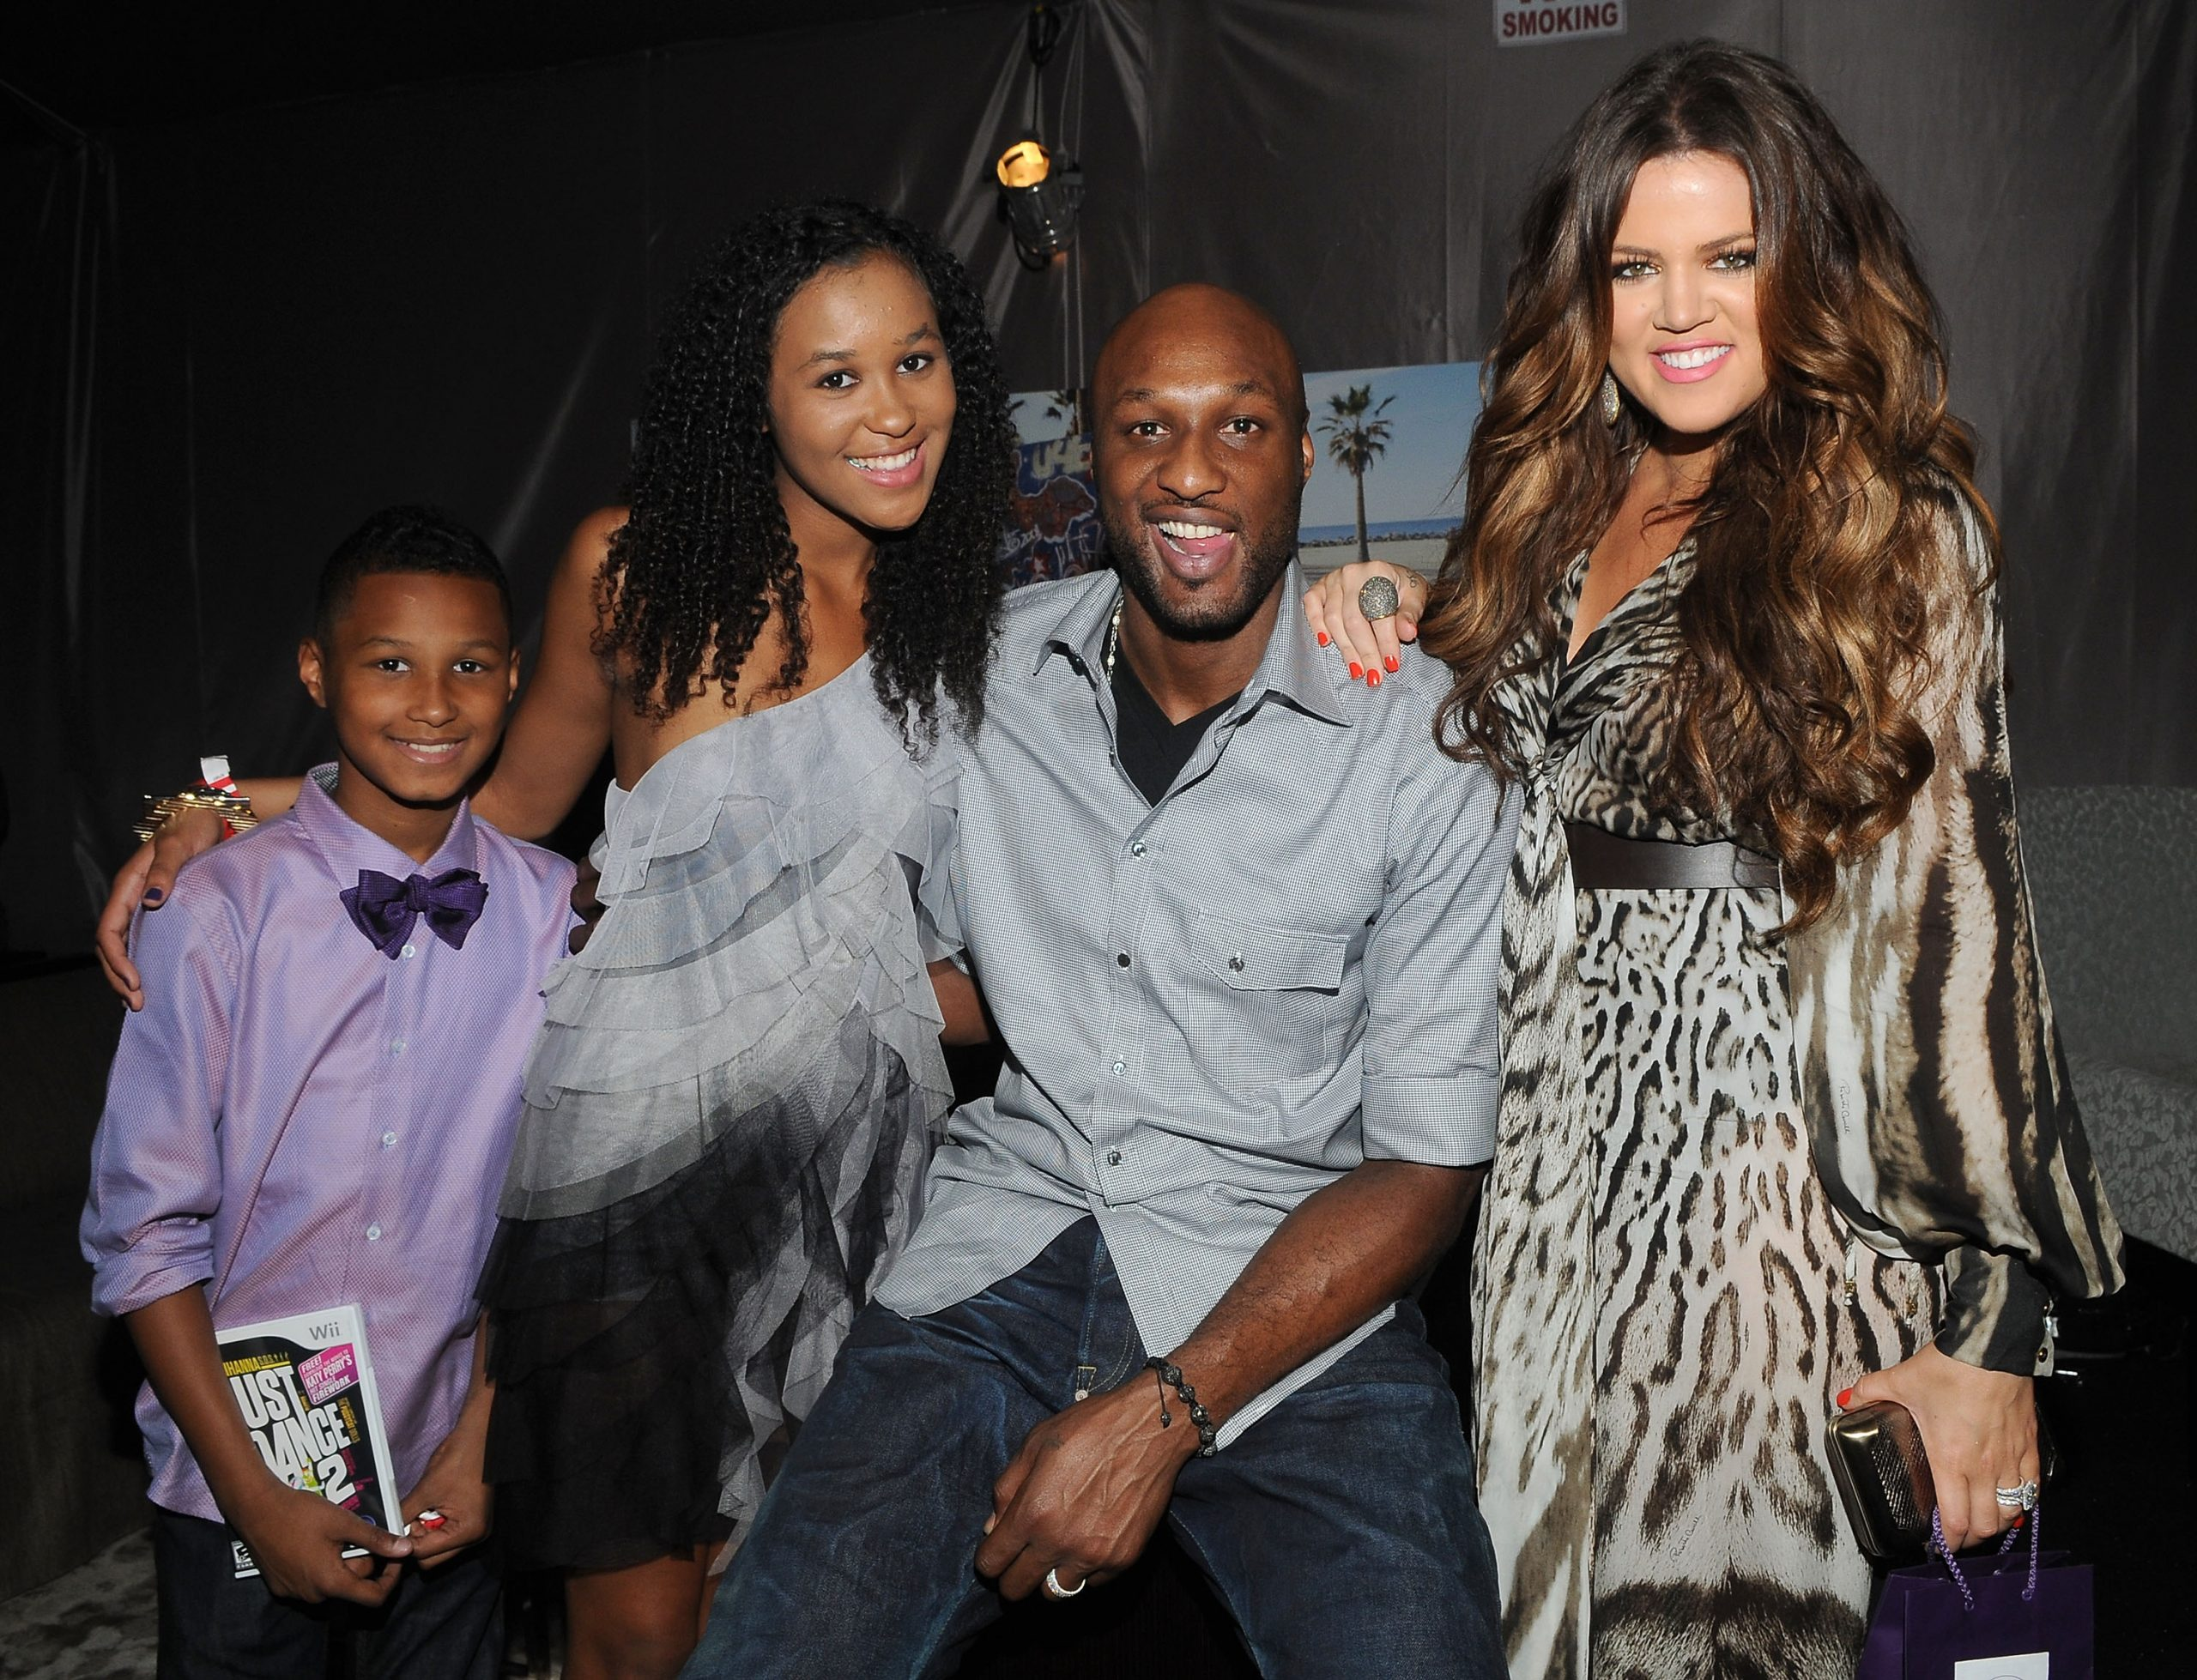 Why Lamar Odom Rarely Saw His Kids When He Was Married to Khloé Kardashian